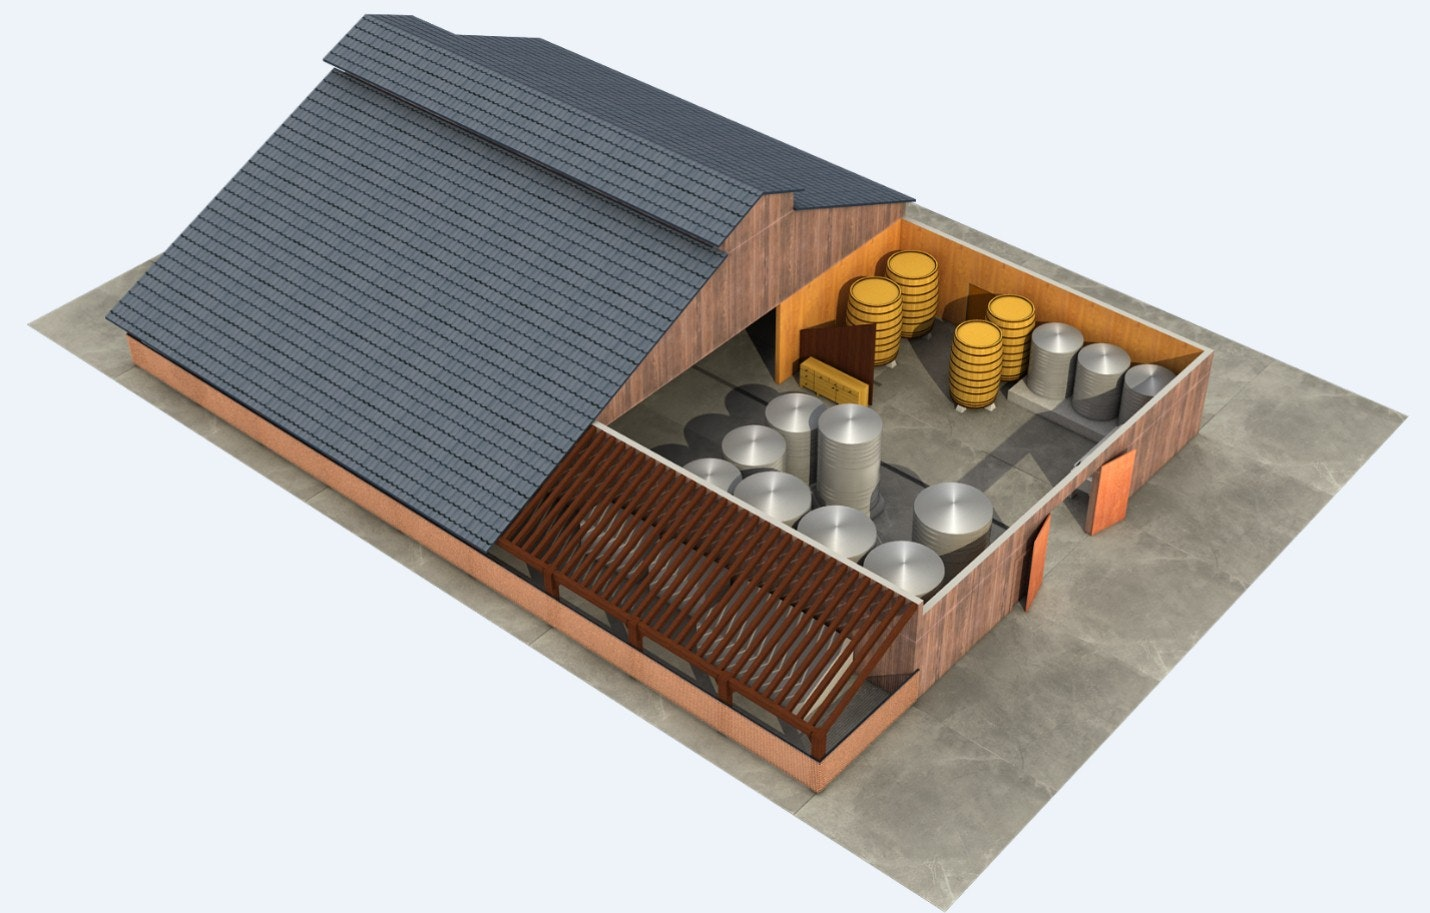 3D Rendering Model of Winery along with Texturing & Lighting | Hi-Tech CADD Services